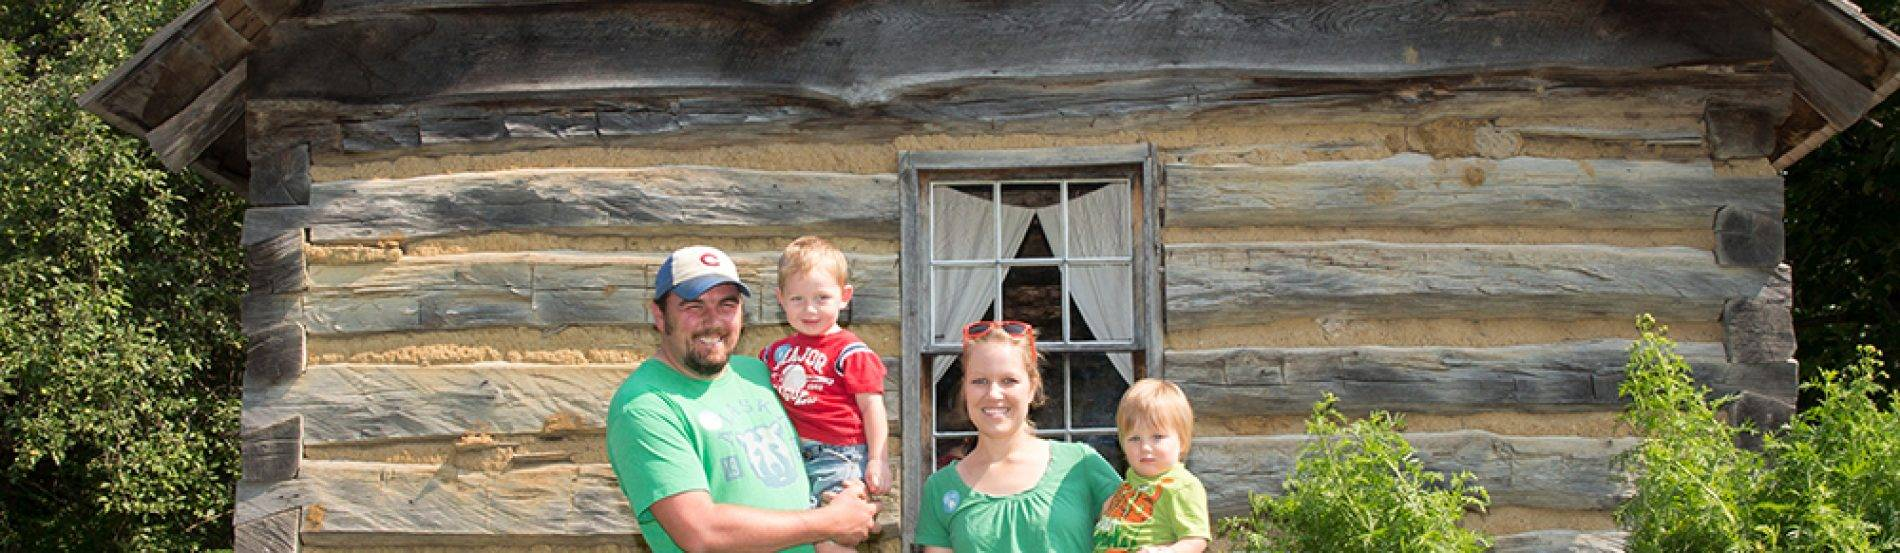 a family poses in front of the 1850 log house